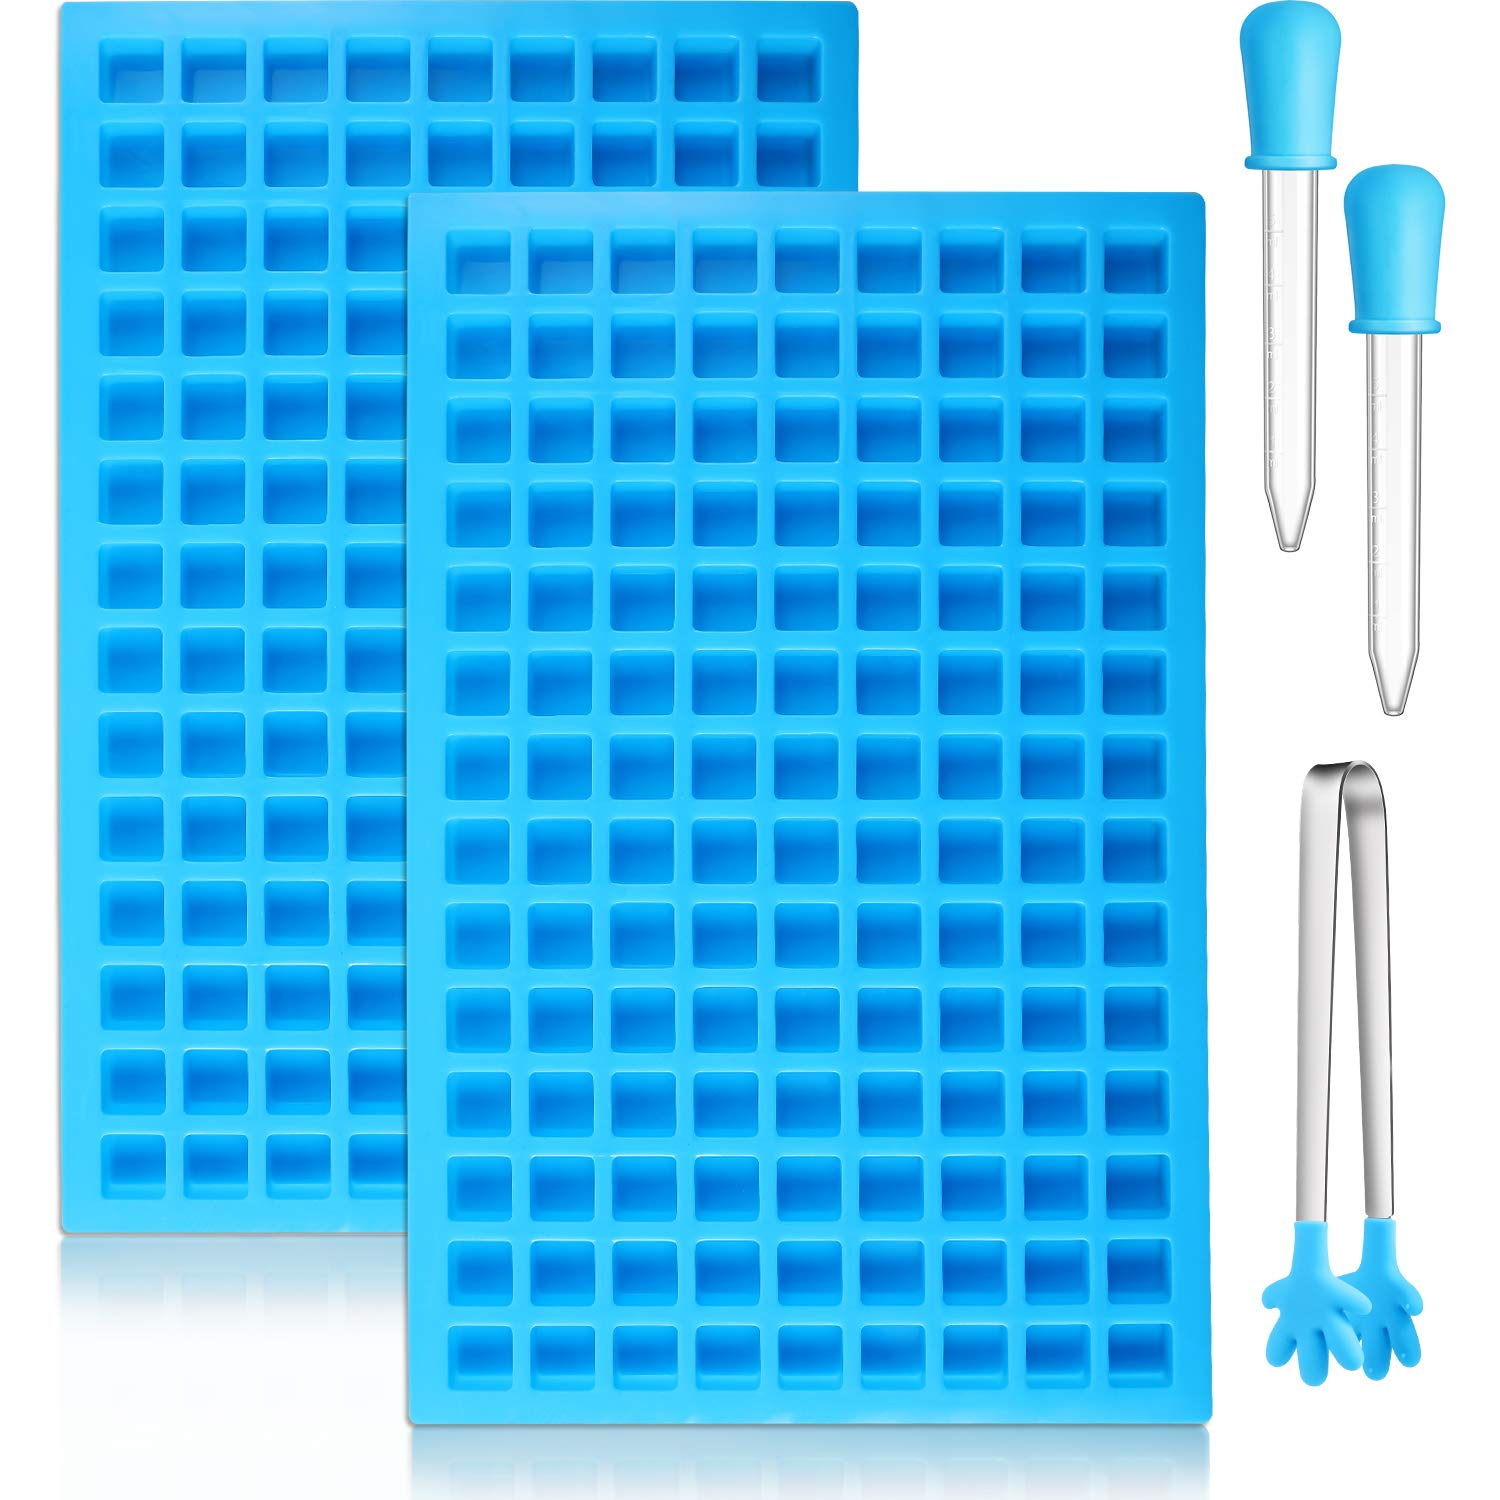 2 Pieces 126-Cavity Square Silicone Mold Mini Candy Molds Ice Cube Tray with Silicone Dropper Clip for Making Homemade Chocolate Candy